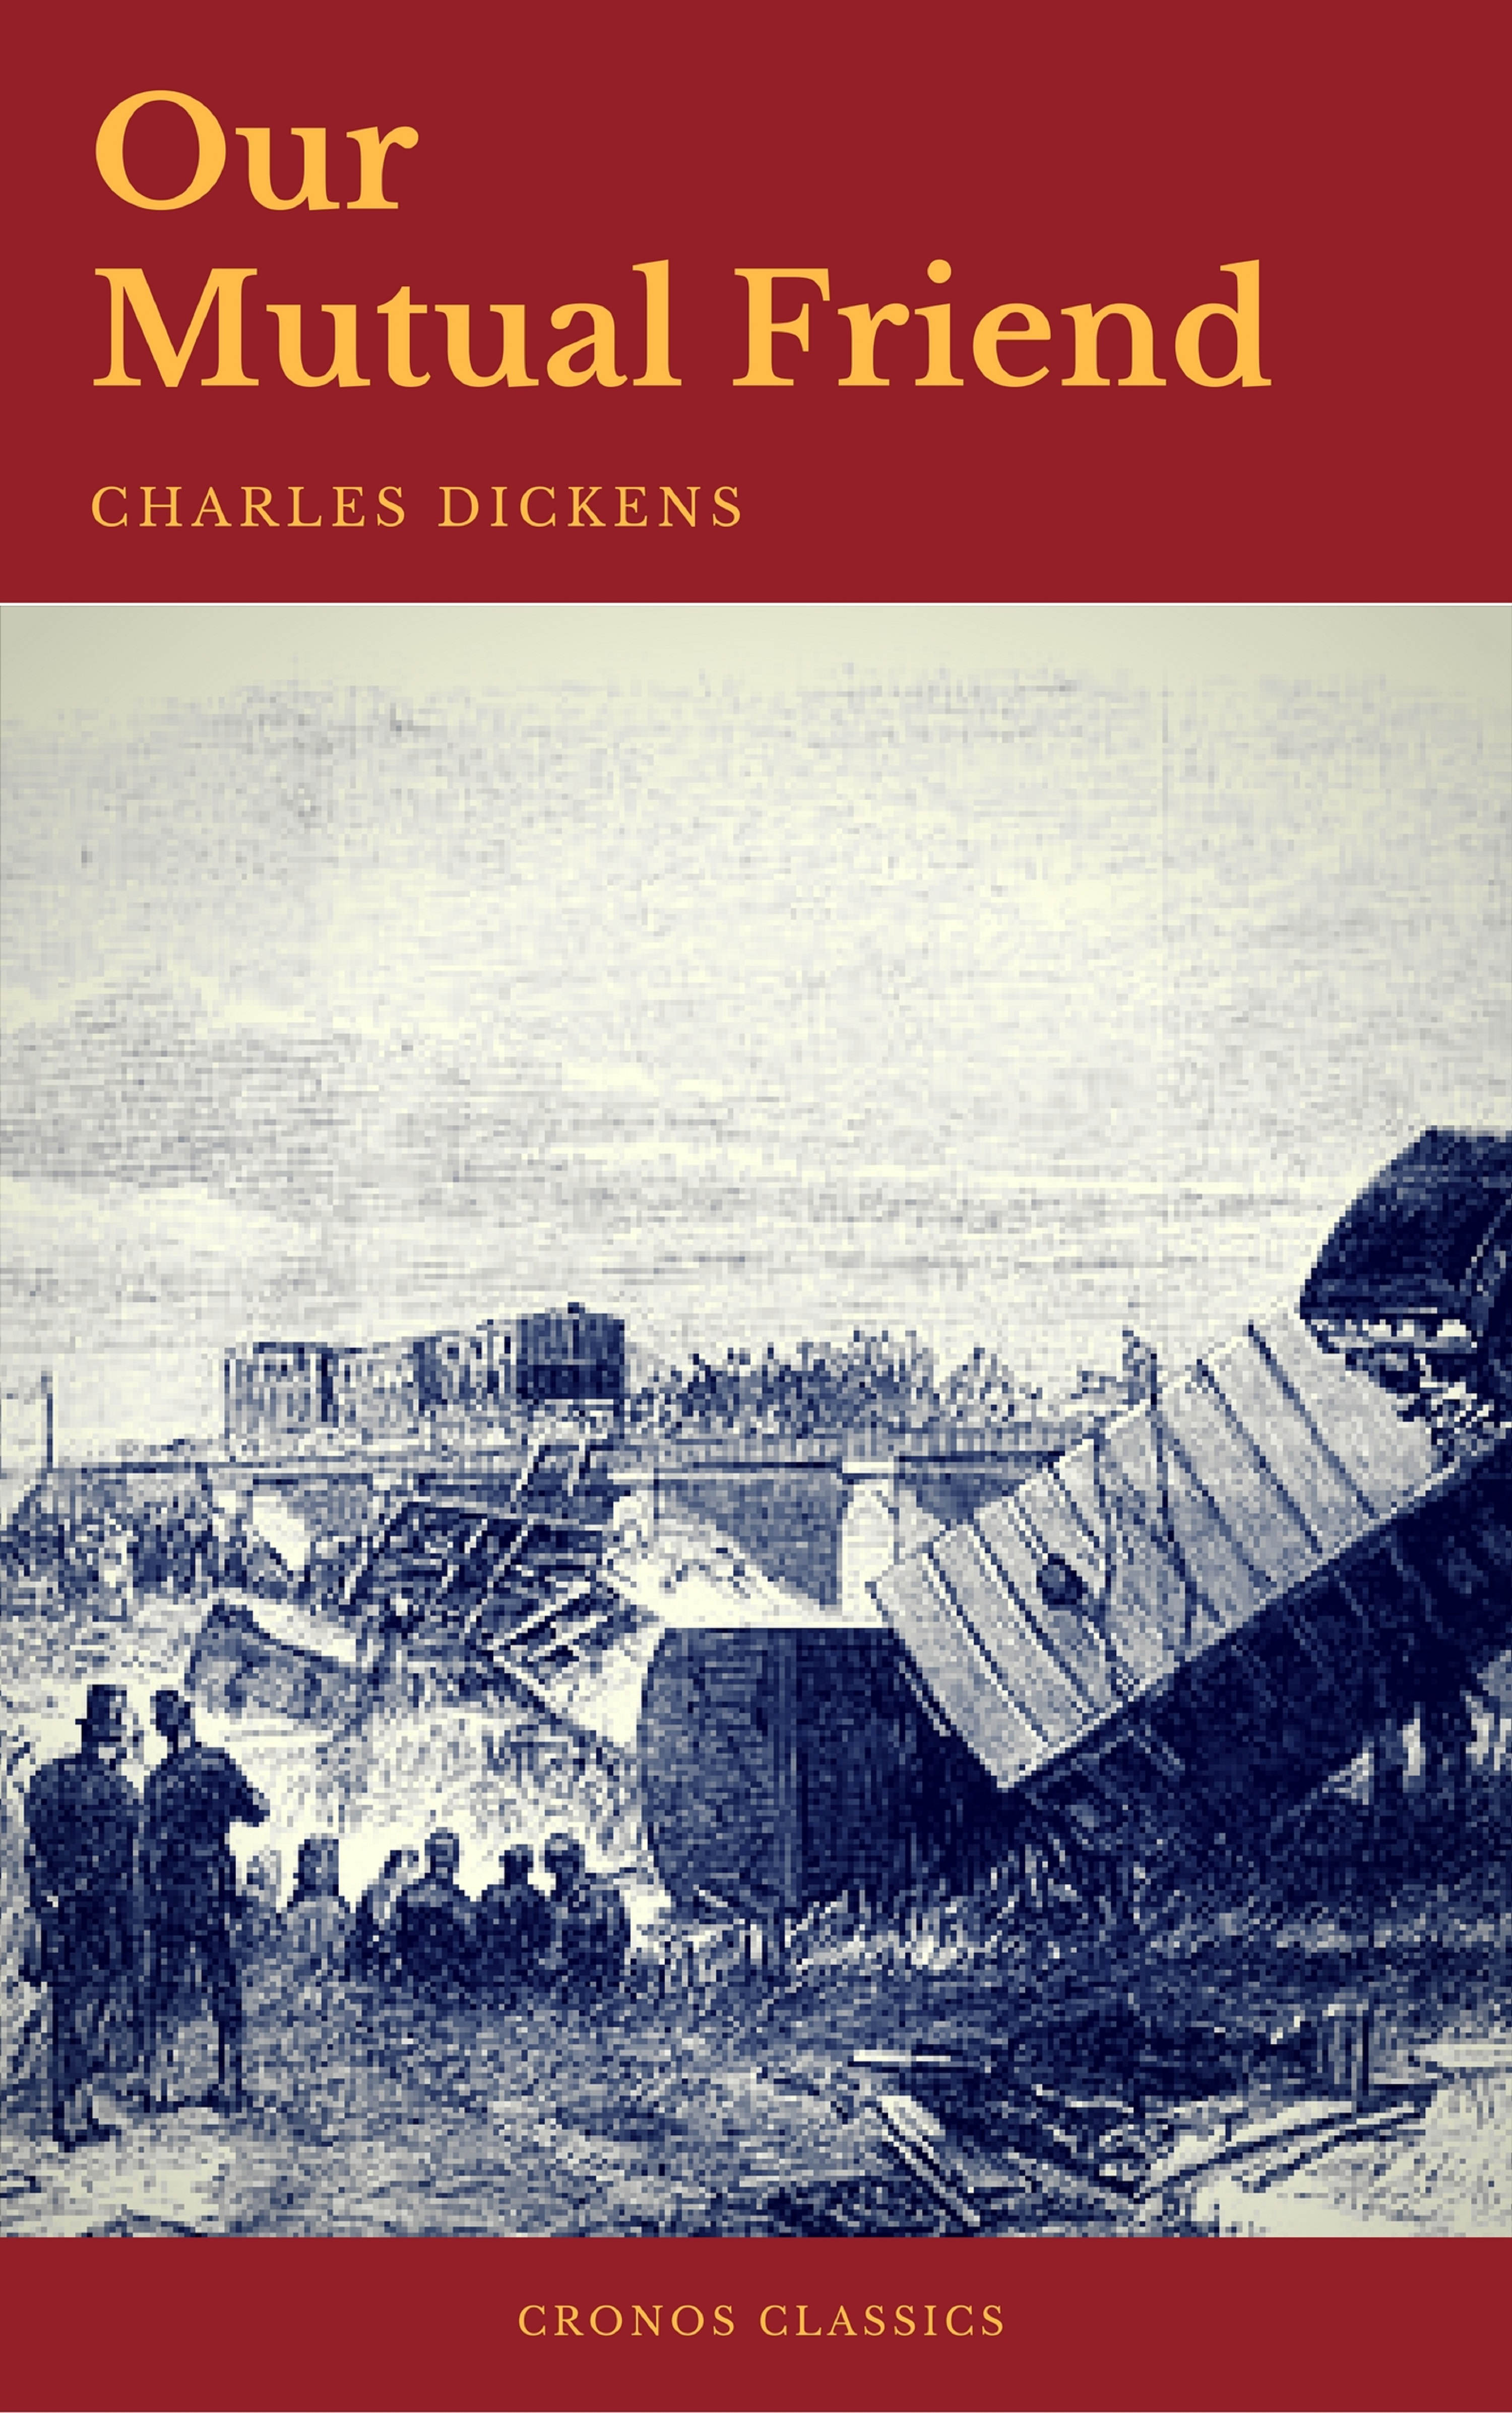 Charles Dickens Our Mutual Friend (Cronos Classics) charles dickens barnaby rudge cronos classics